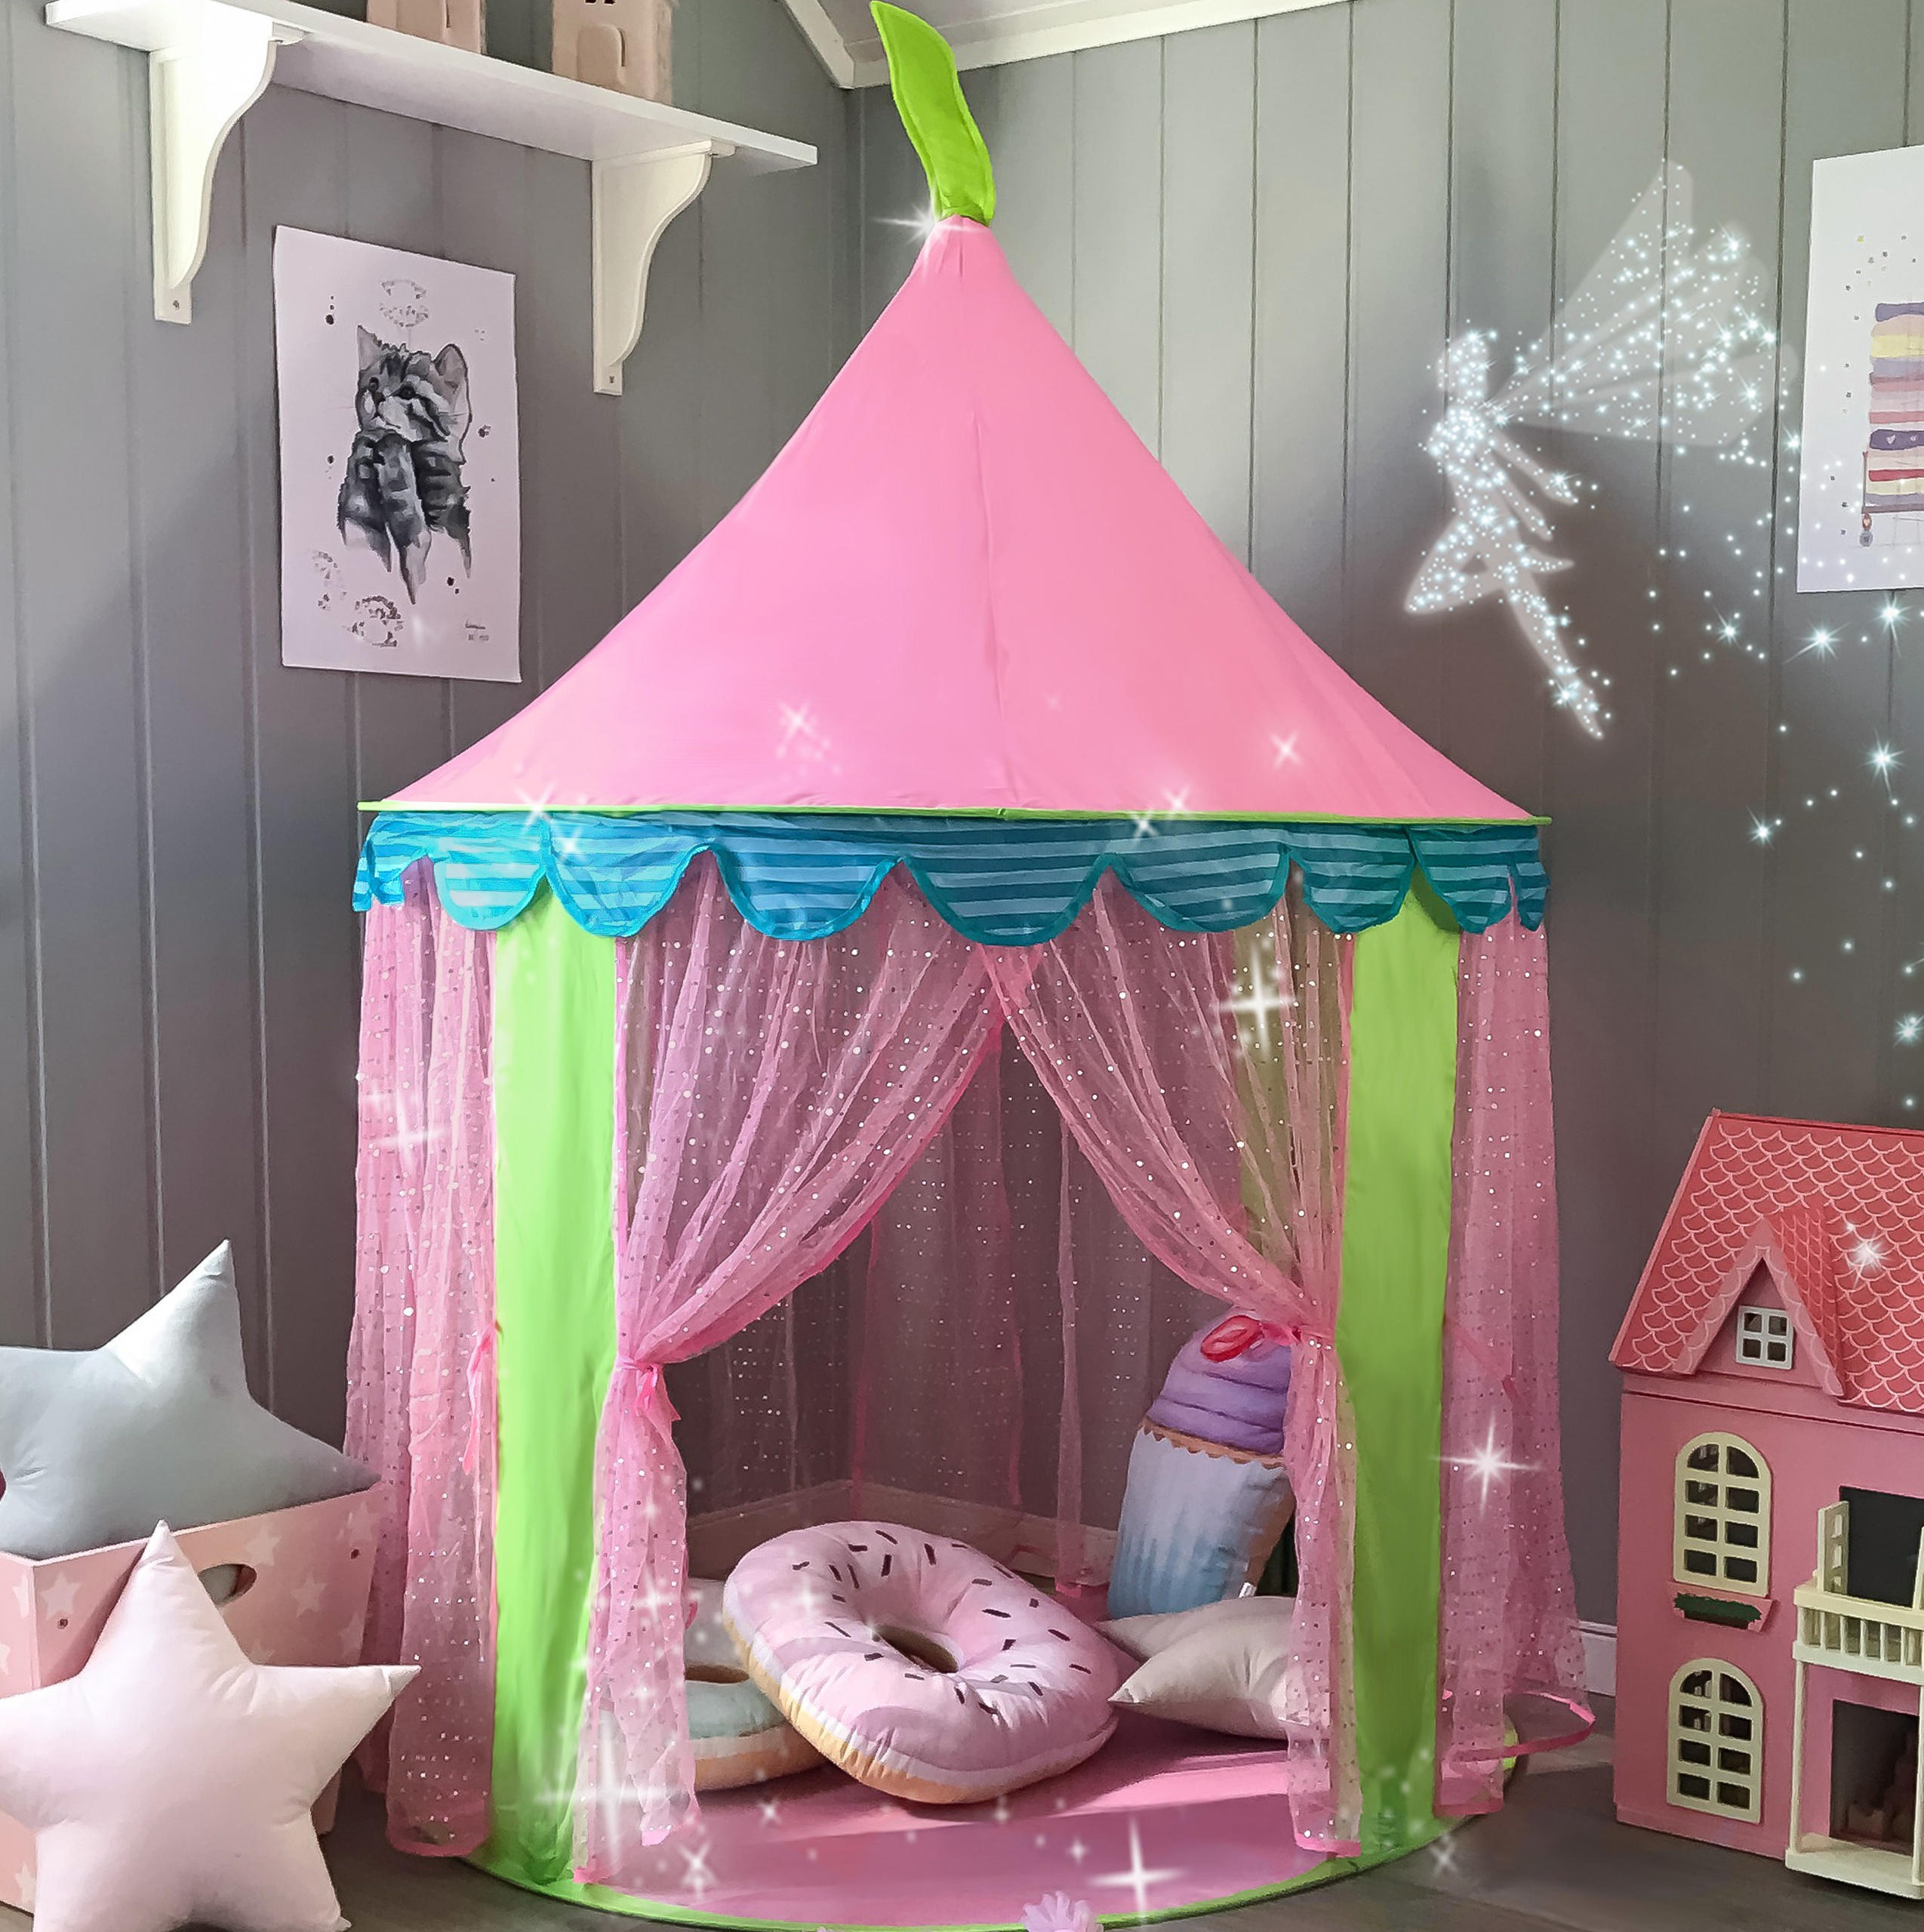 Play Teepee Tent for kids Princess Castle Indoor & Outdoor Pink Sheer Girls image